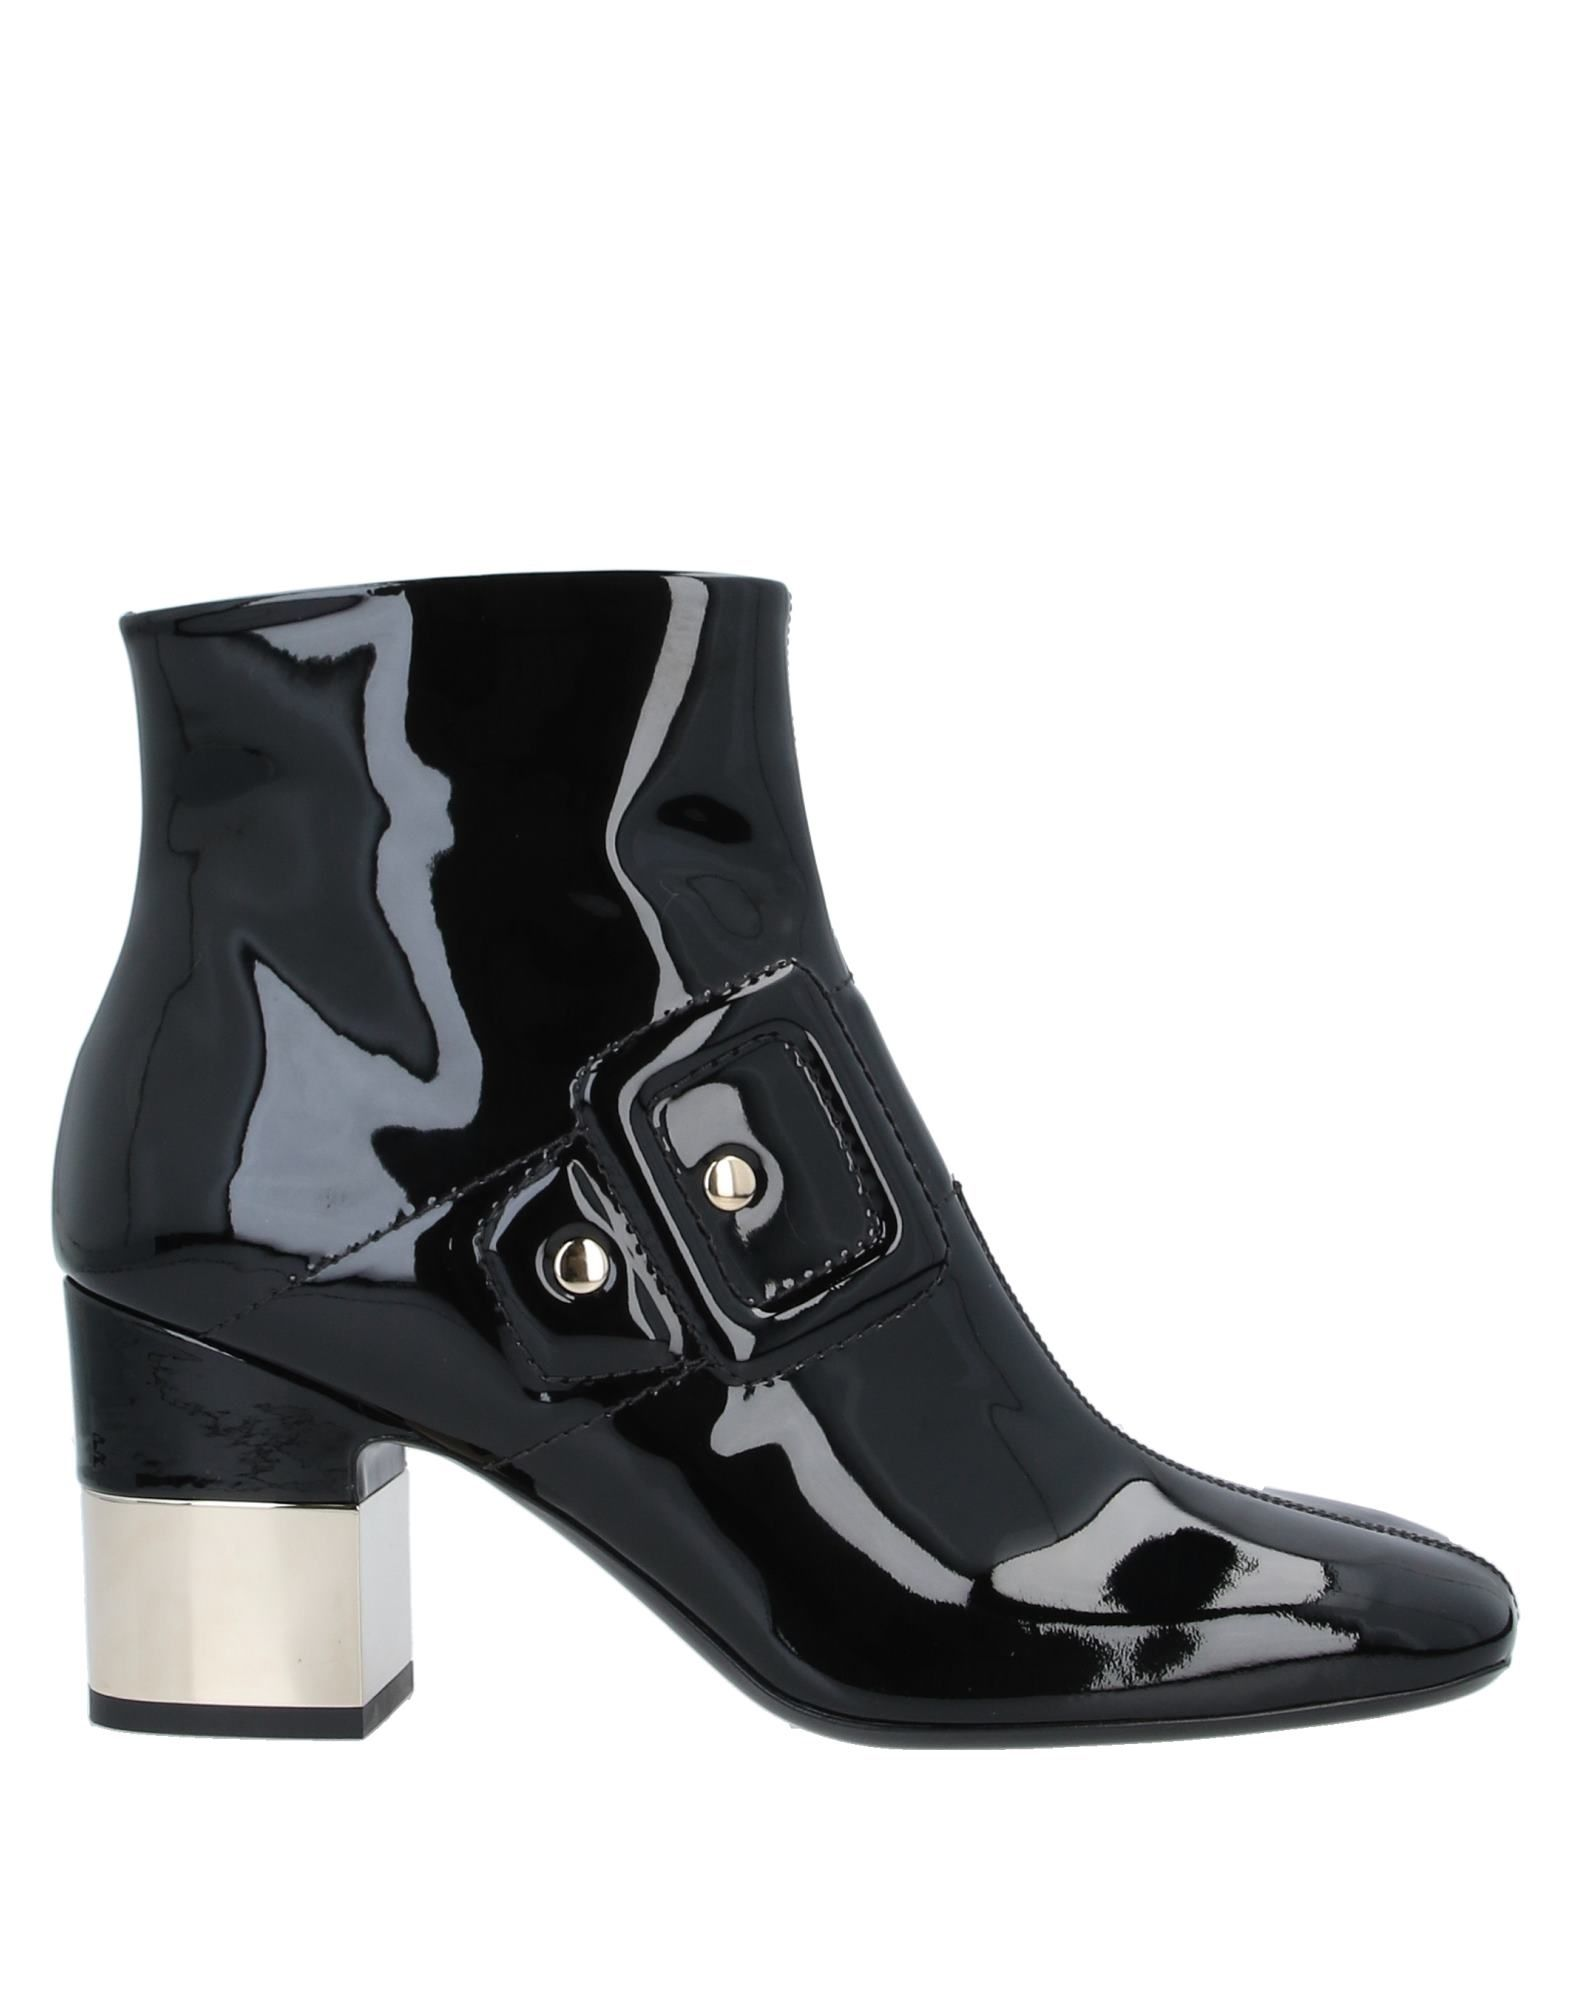 ROGER VIVIER Ankle boots. leather, metal applications, solid color, zip, square toeline, geometric heel, leather lining, varnished effect, leather sole, contains non-textile parts of animal origin. Soft Leather